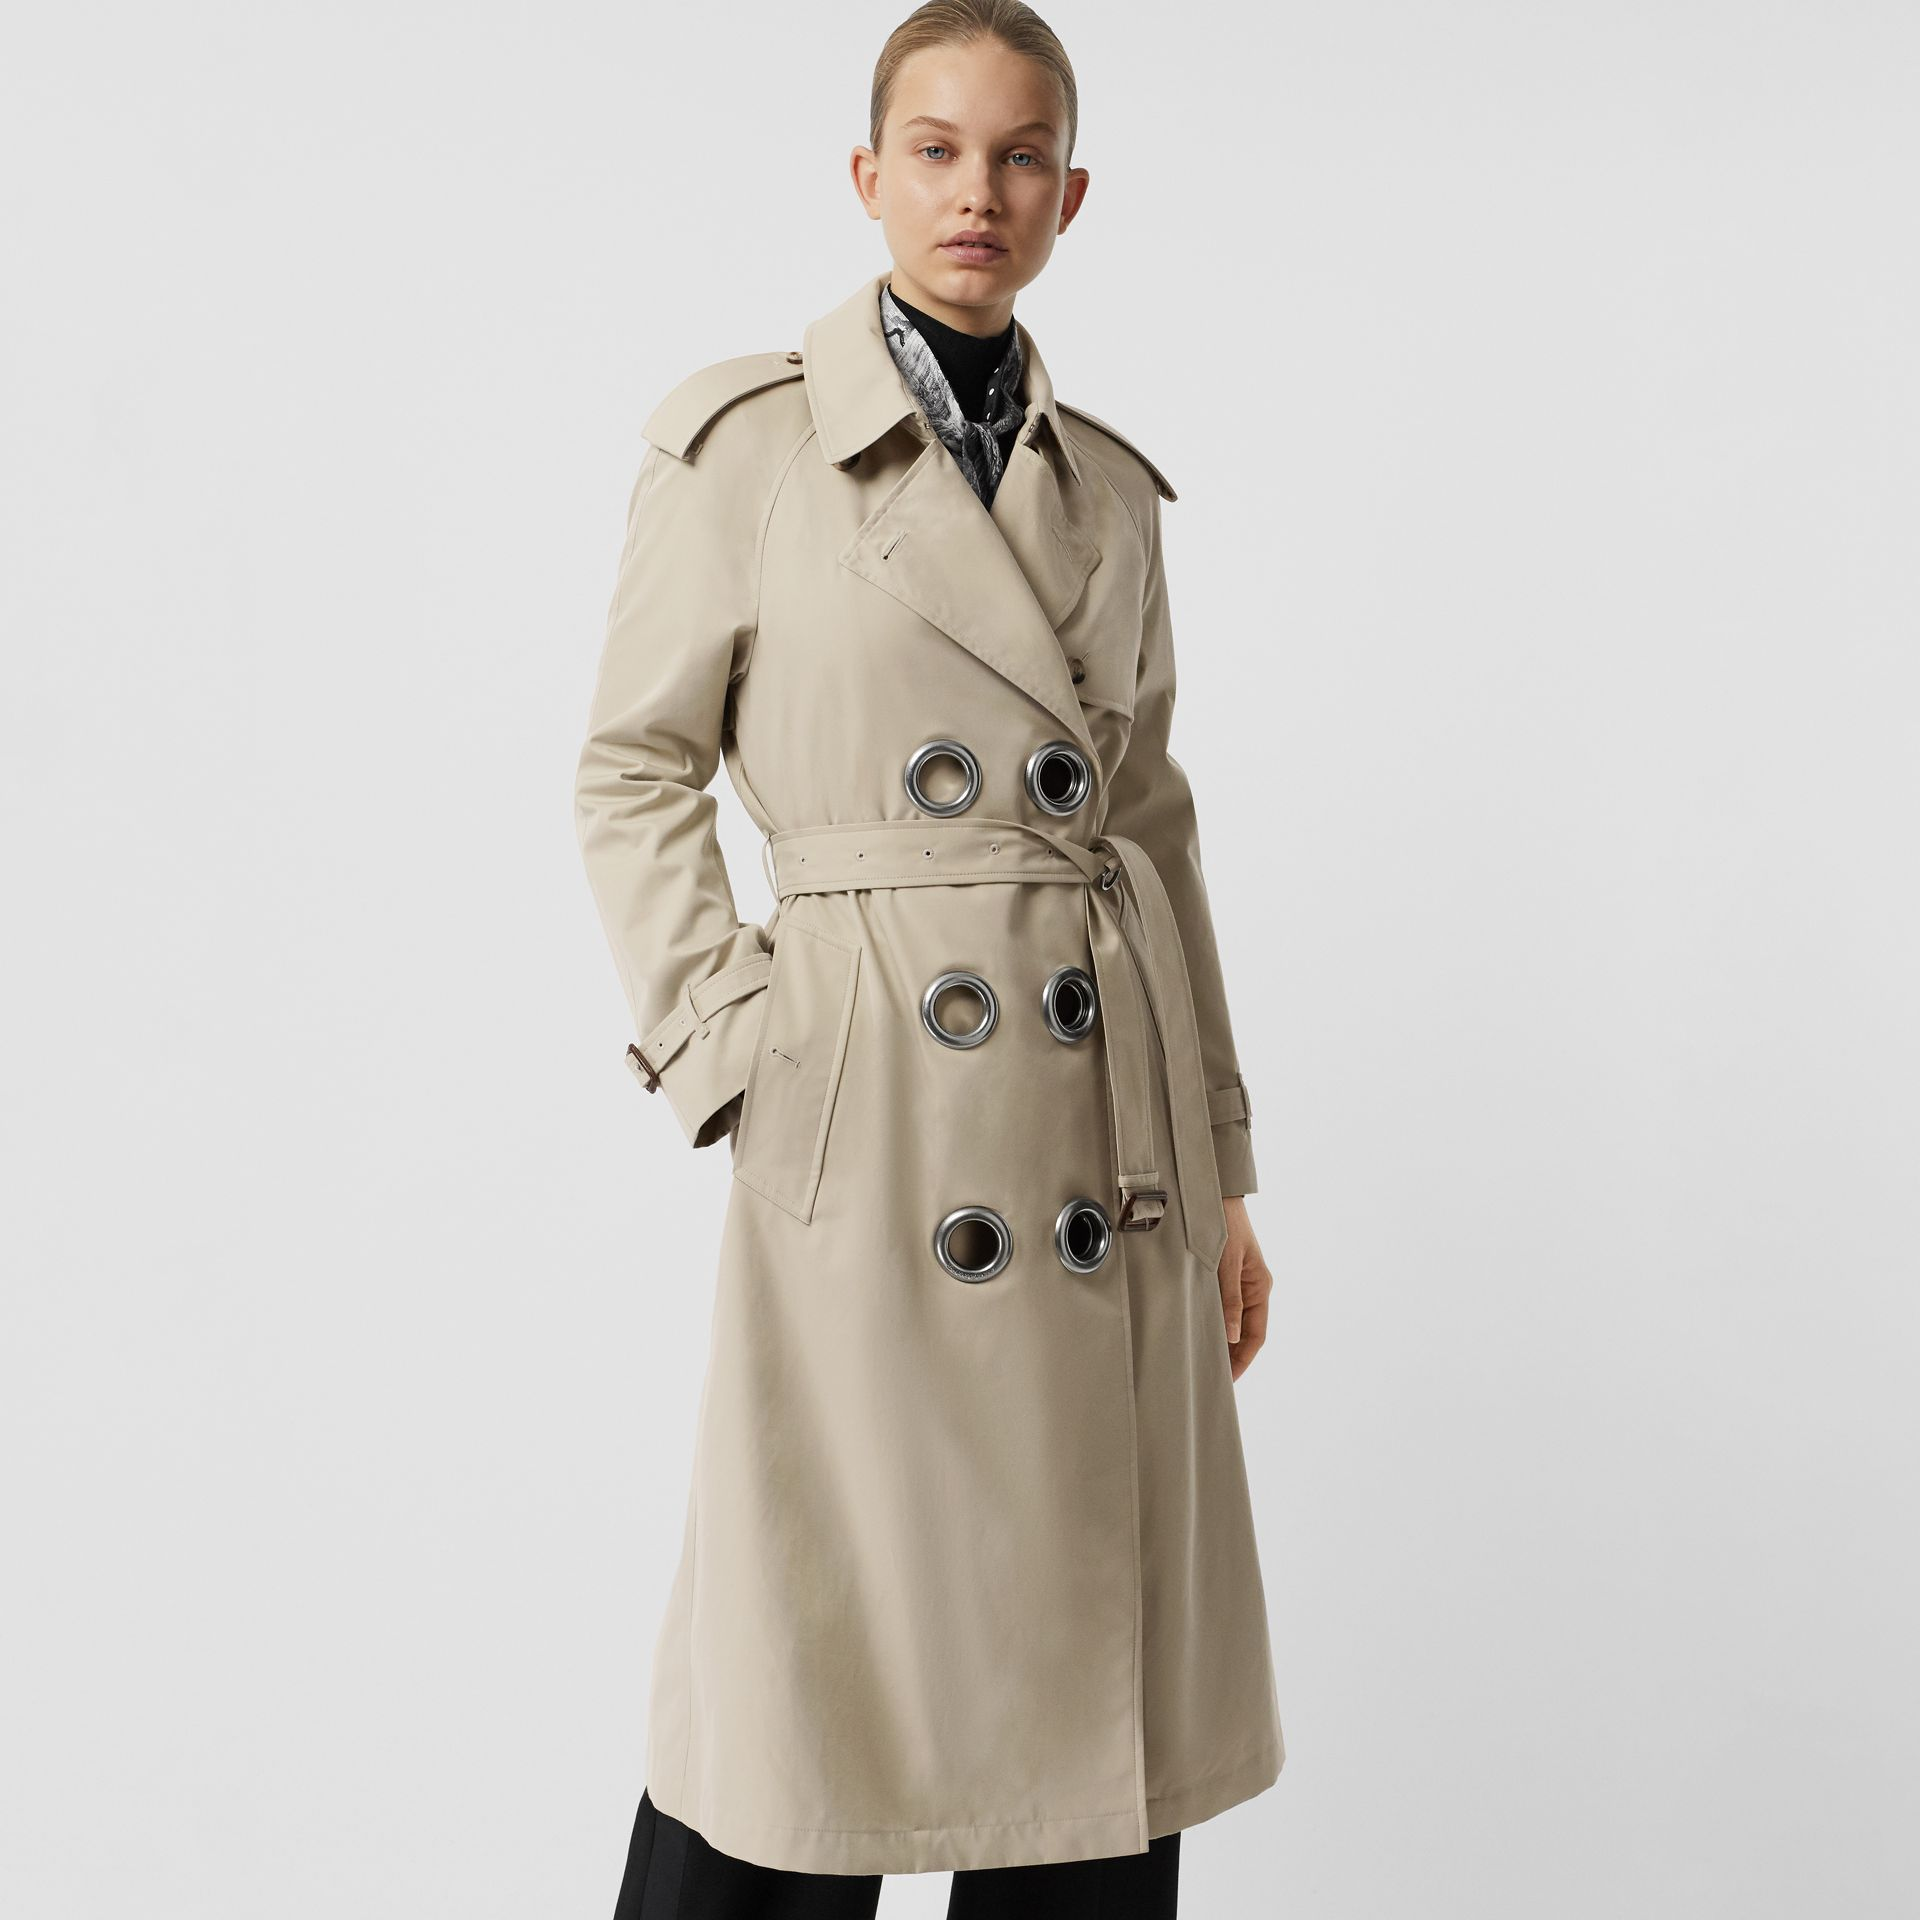 Grommet Detail Cotton Gabardine Trench Coat in Stone - Women | Burberry - gallery image 7